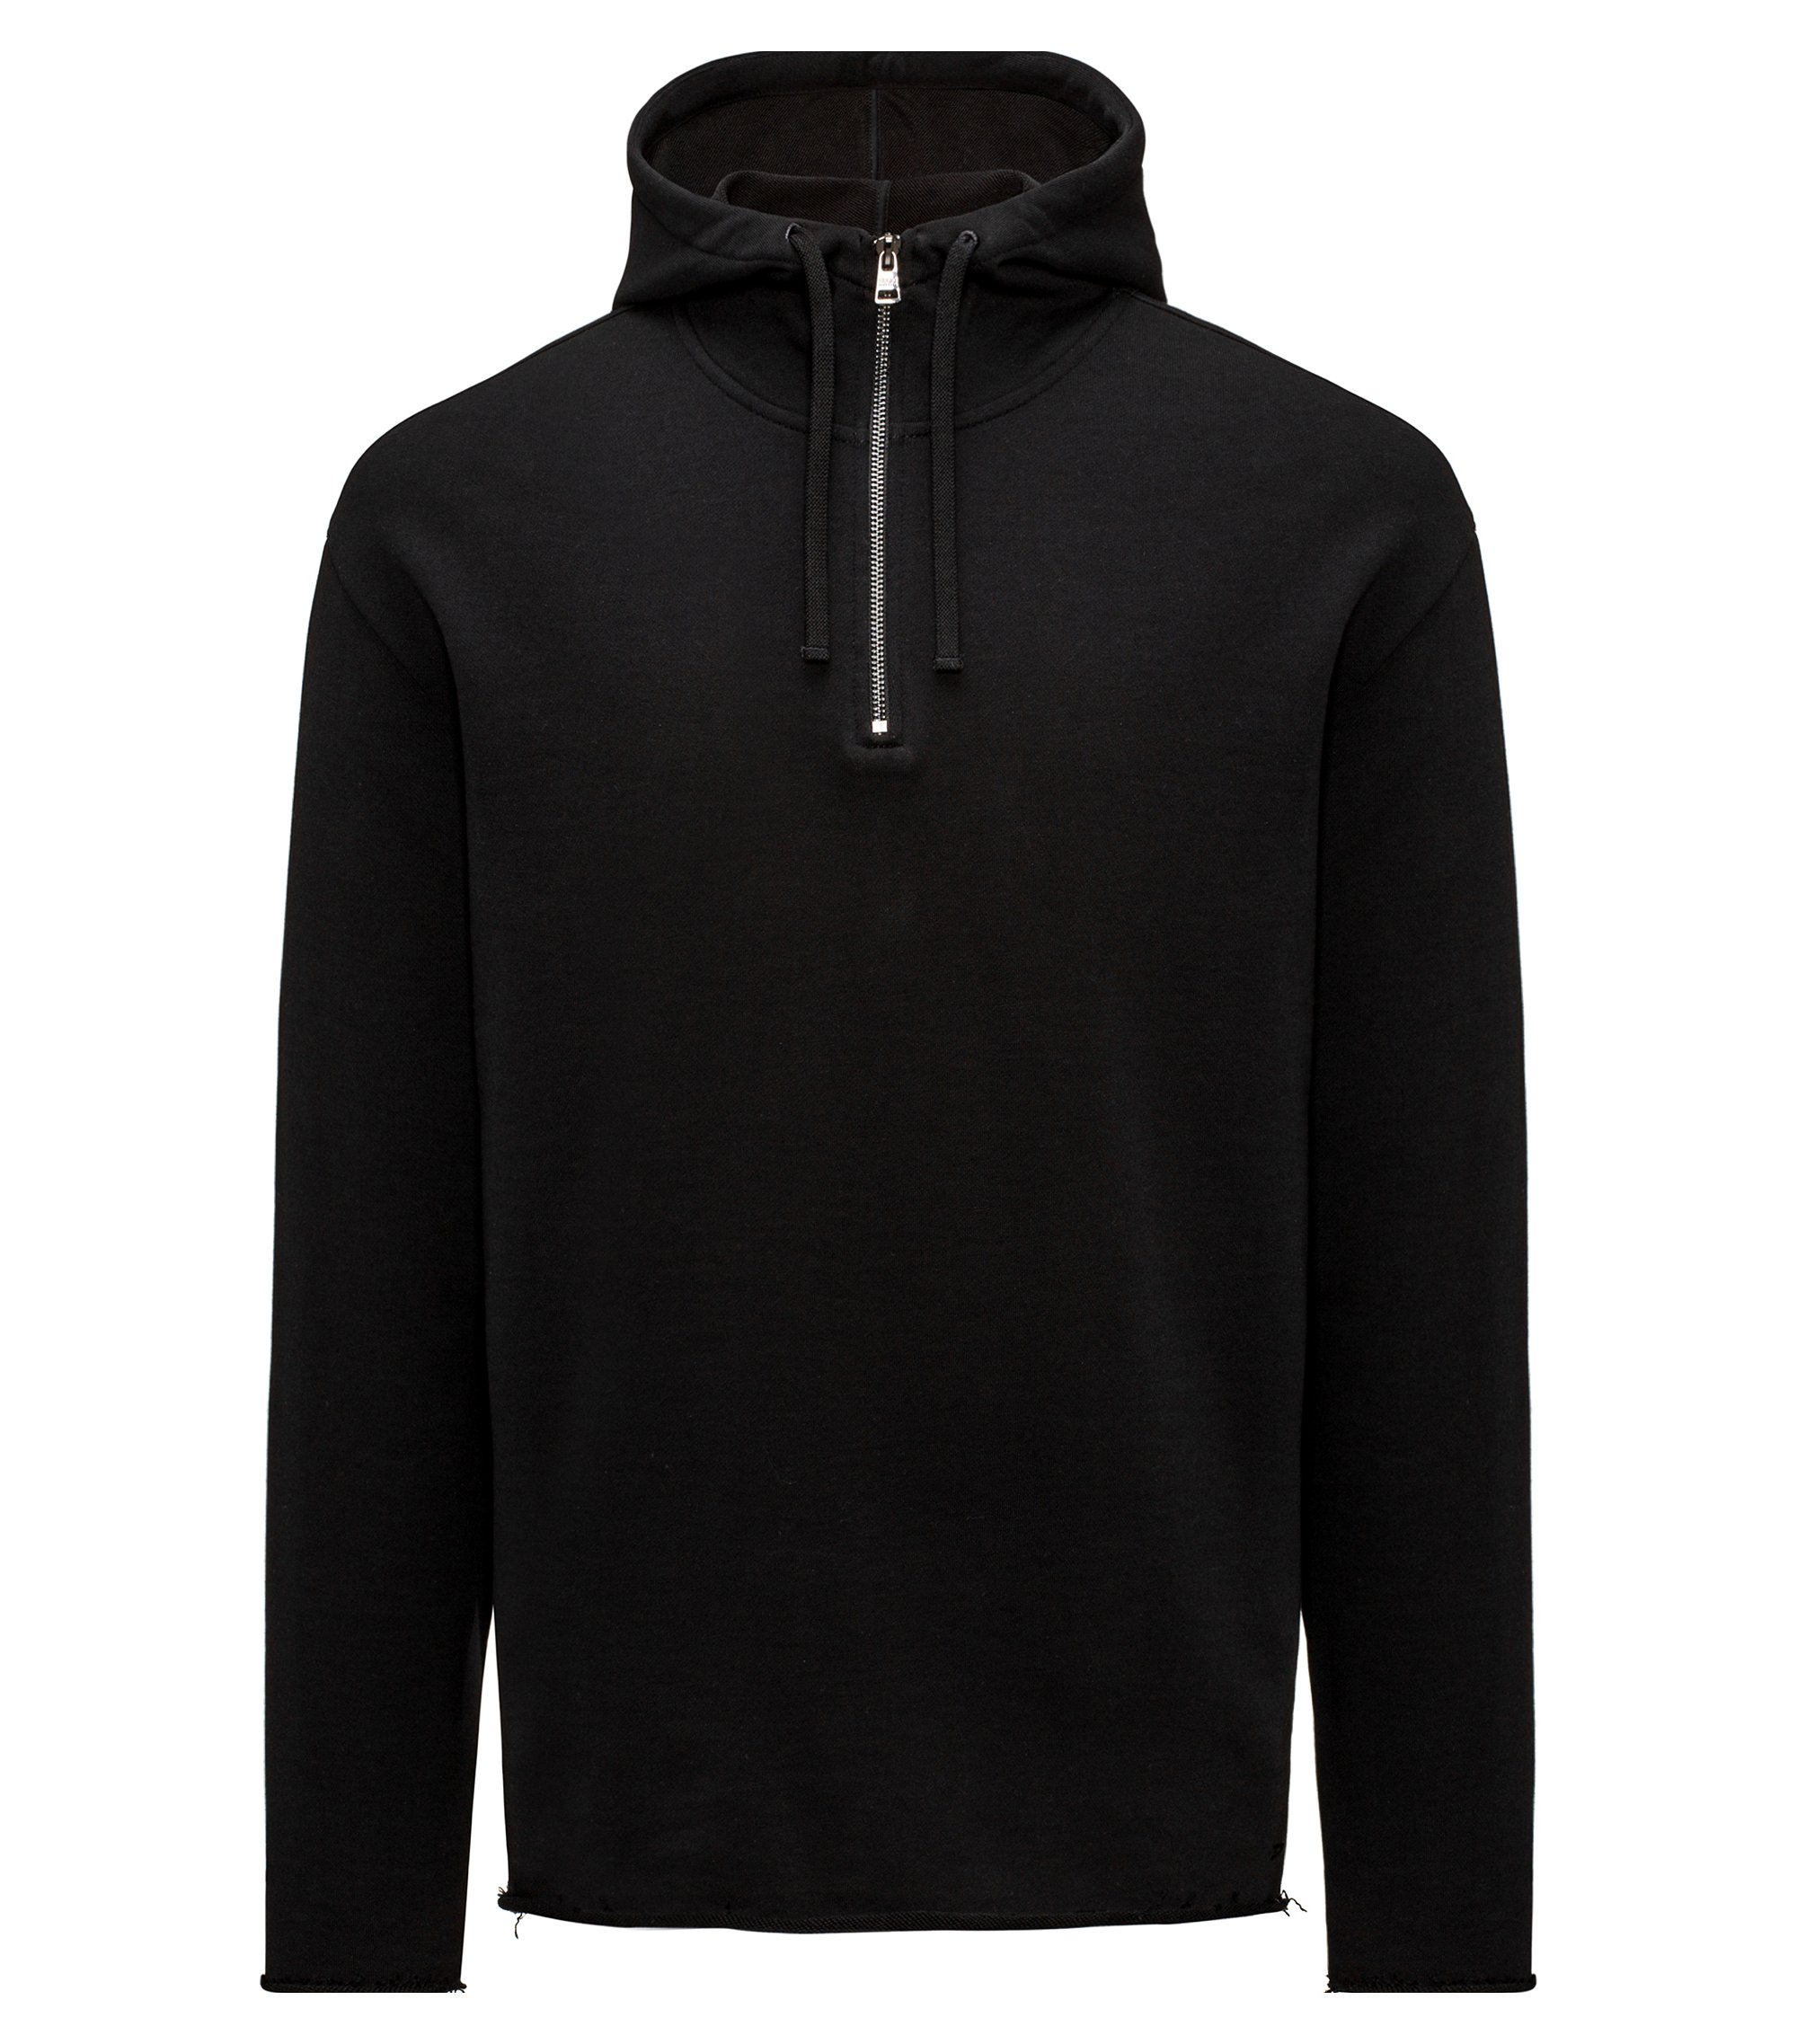 Cotton Half-Zip Hooded Sweatshirt | Dolonel, Black